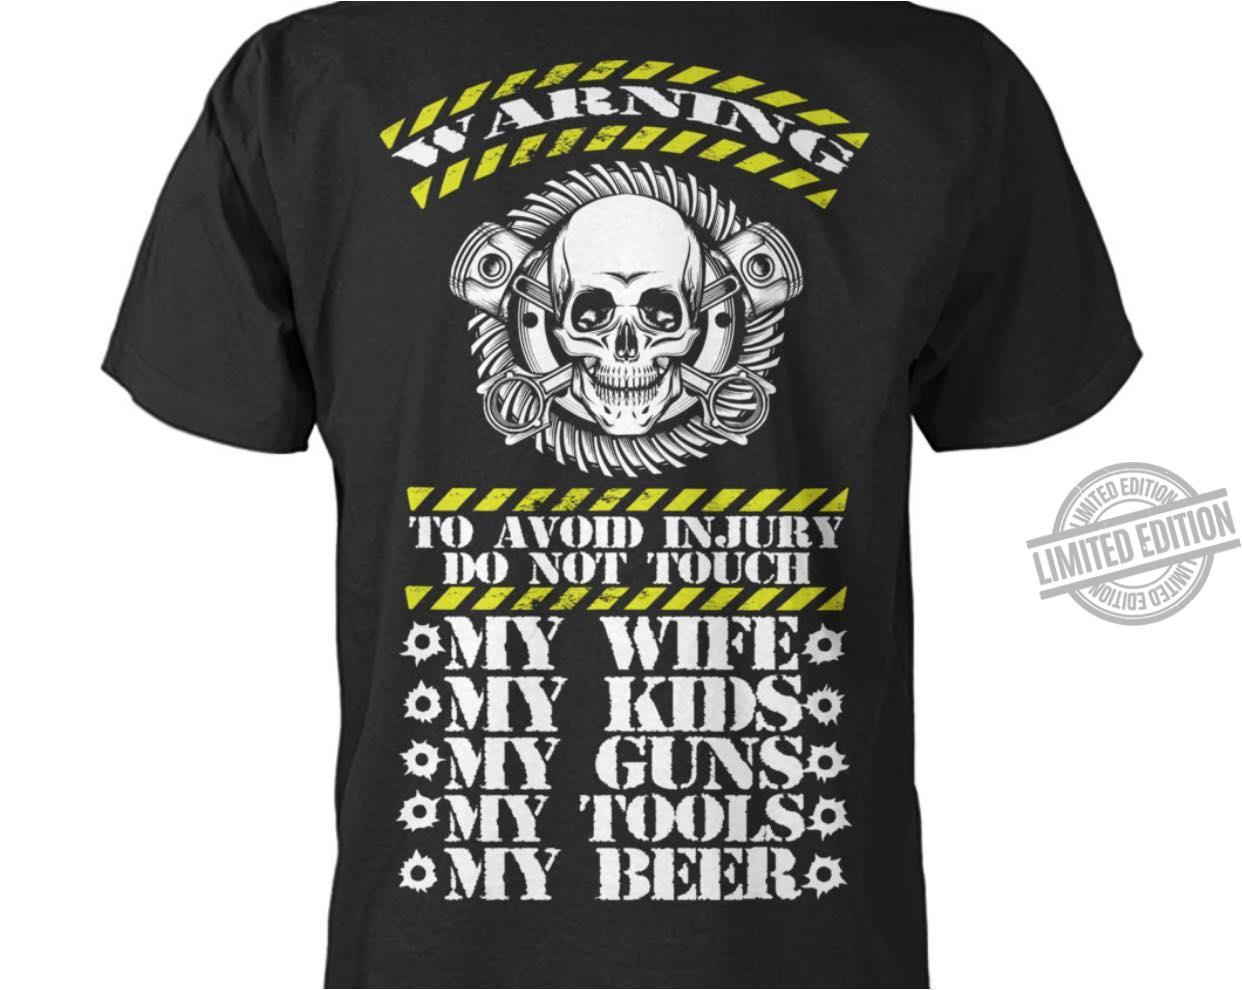 Warning To Avoid Injury Do Not Touch My Wife My Kids My Guns My Tools My Beer Shirt